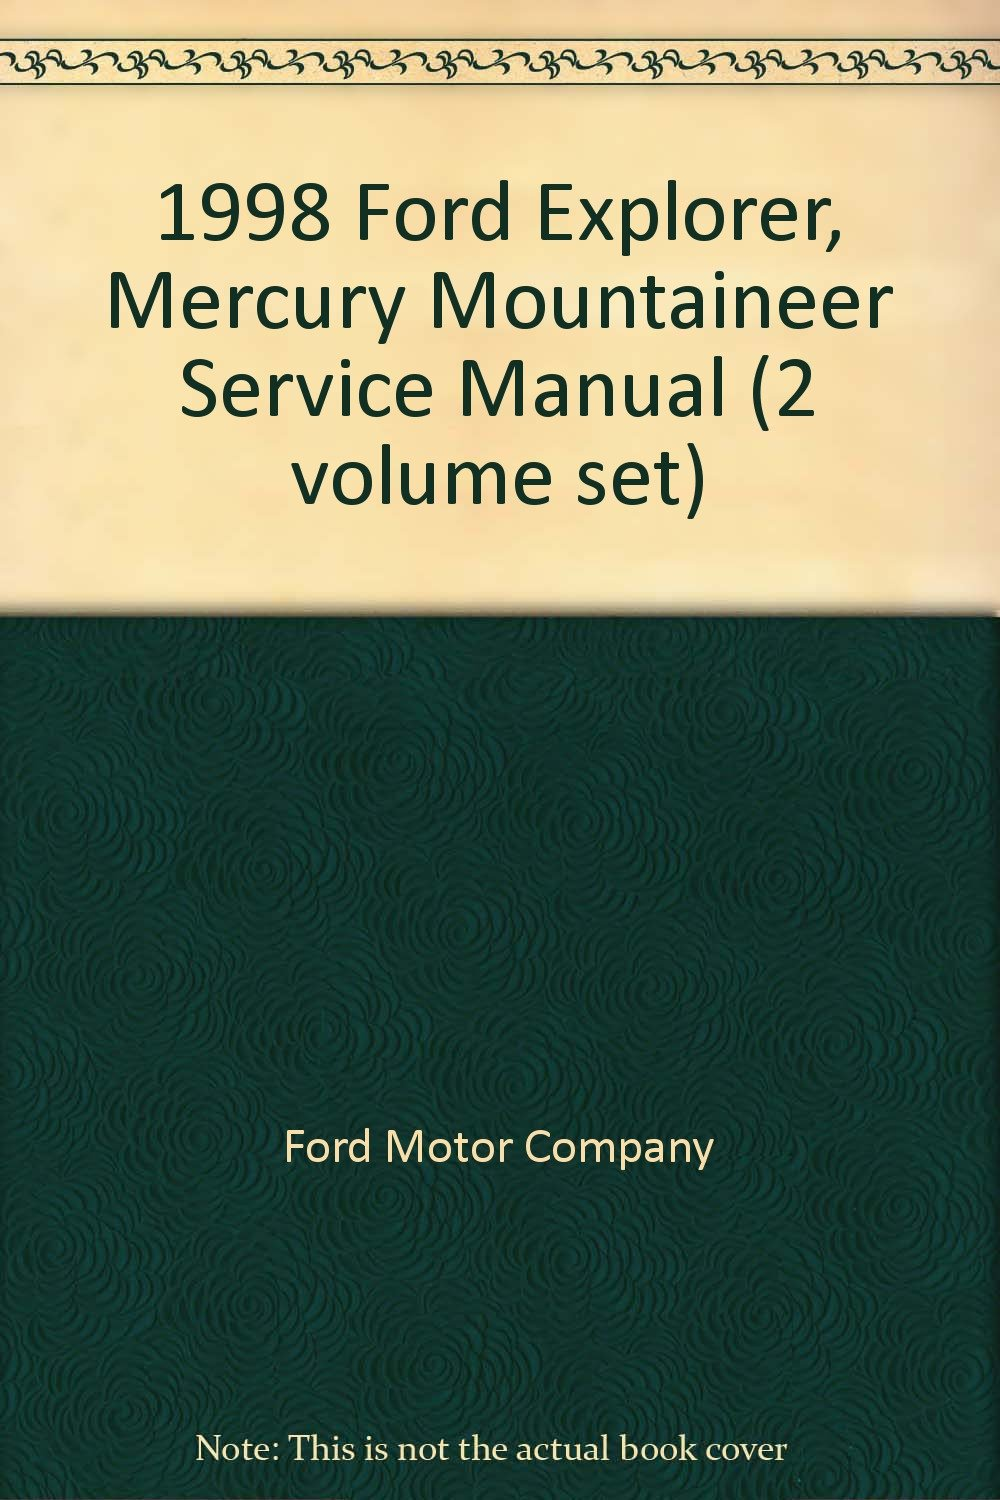 1998 Ford Explorer, Mercury Mountaineer Service Manual (2 volume set): Ford  Motor Company: Amazon.com: Books